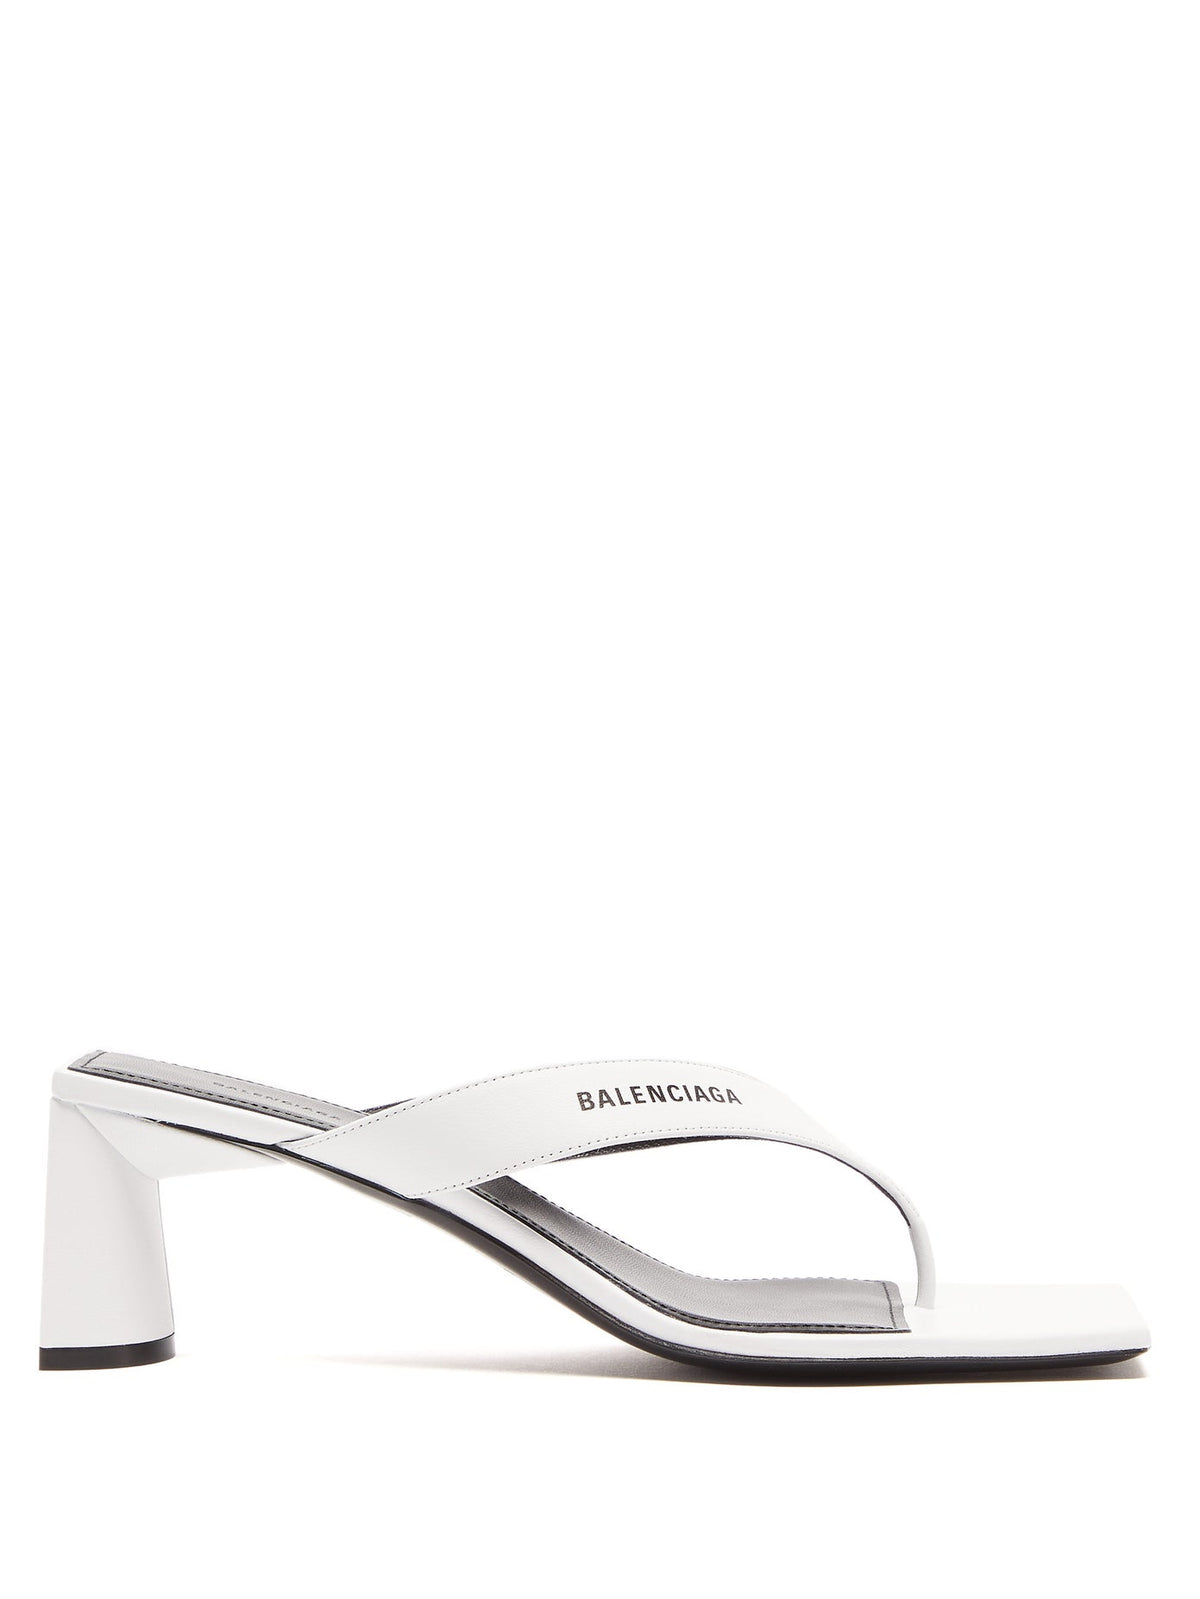 Double Square Leather Sandal - White/Black